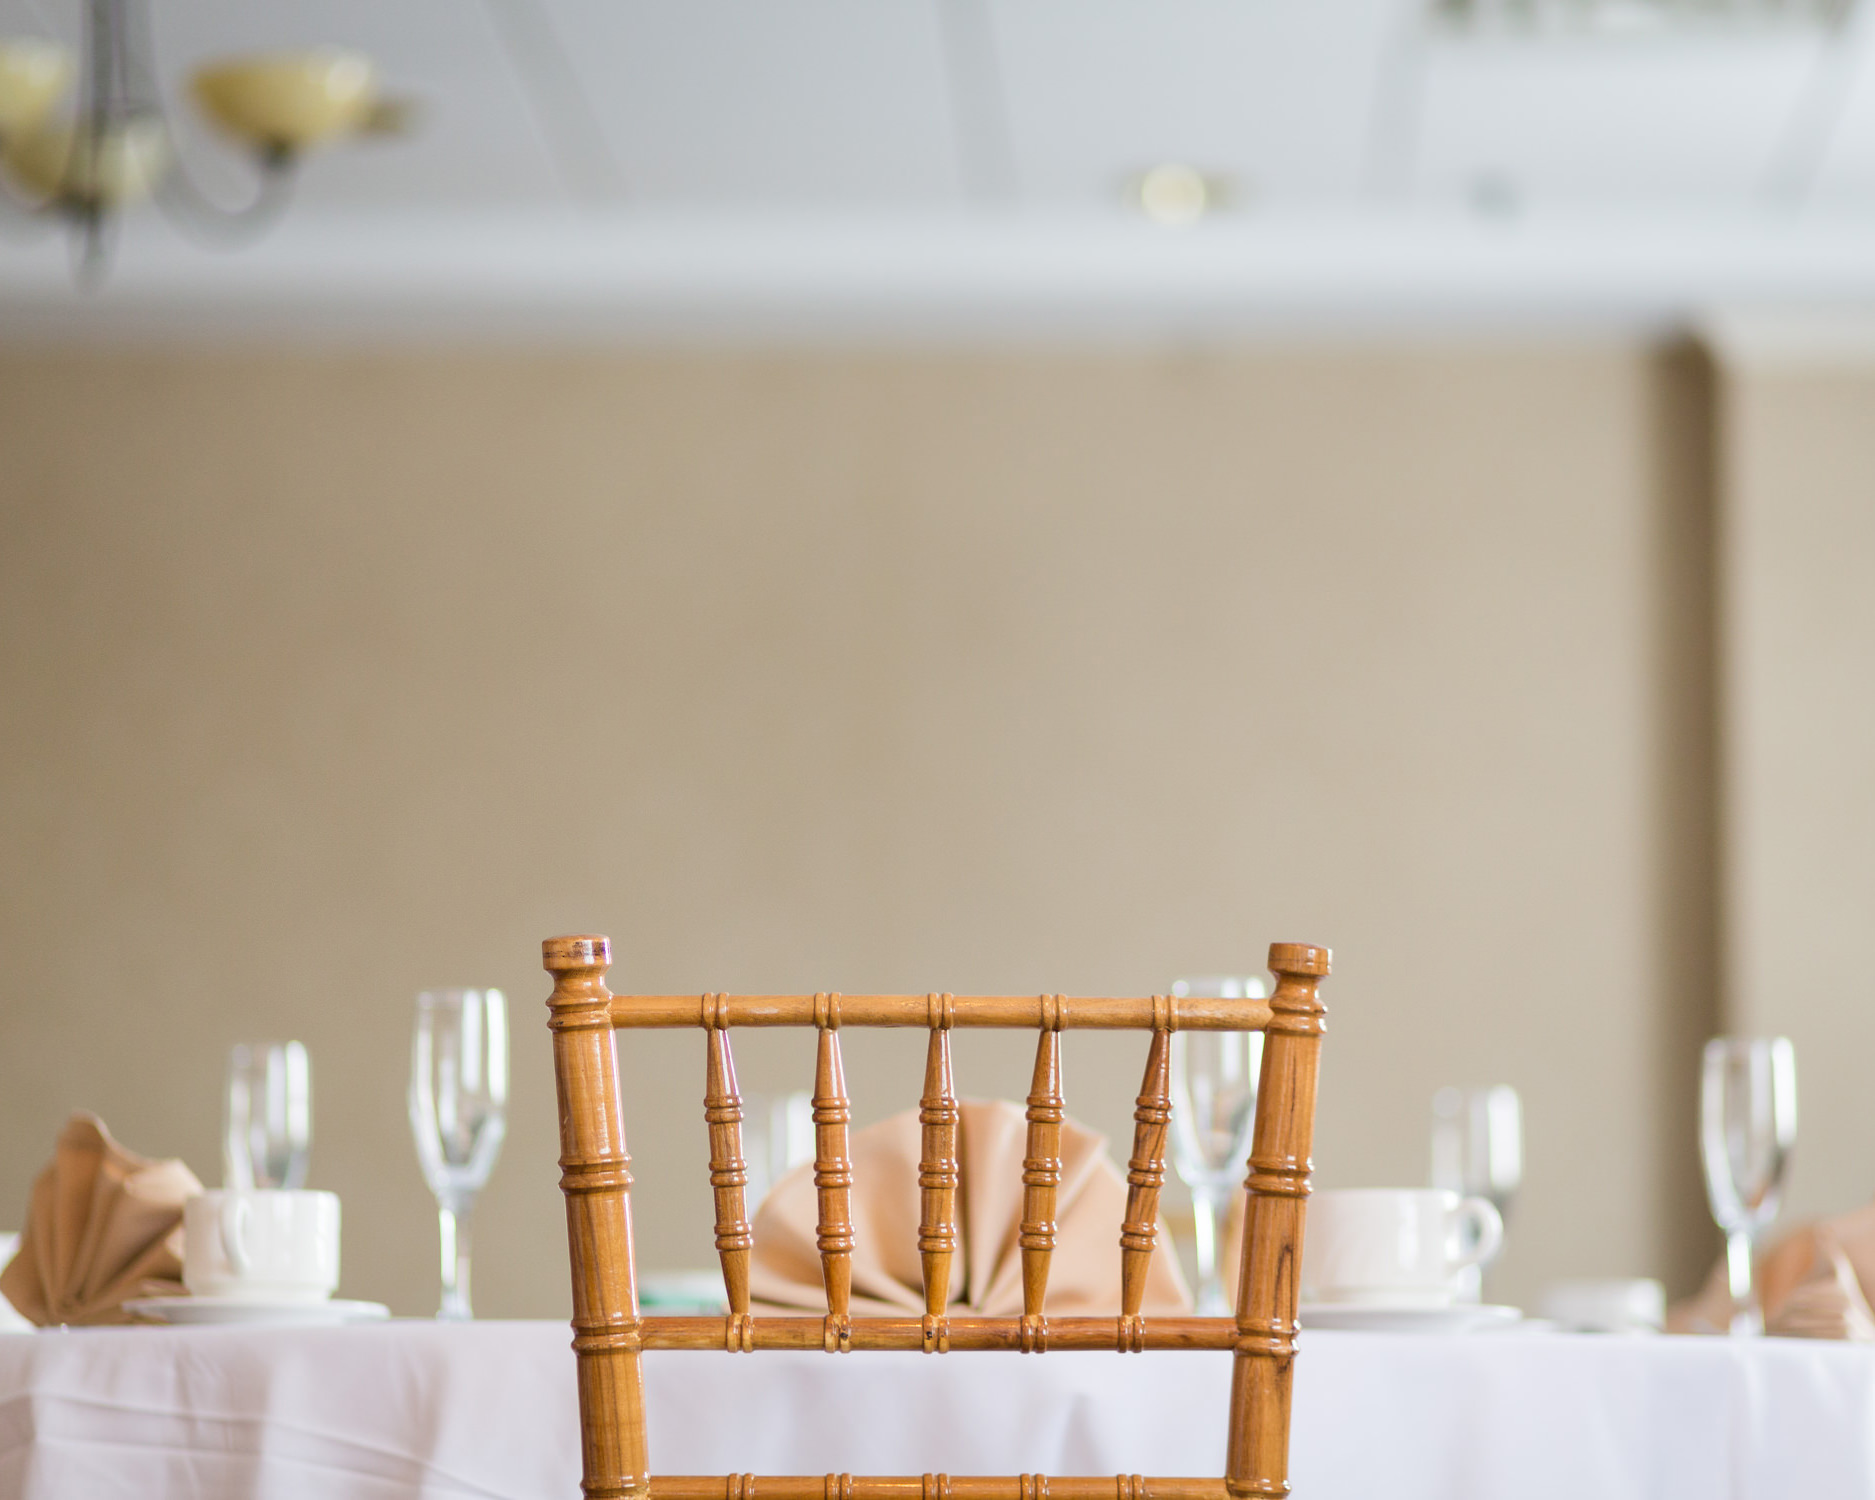 A deluxe cane chair is set at a wedding table at the Essex Resort in a photo by Stina Booth